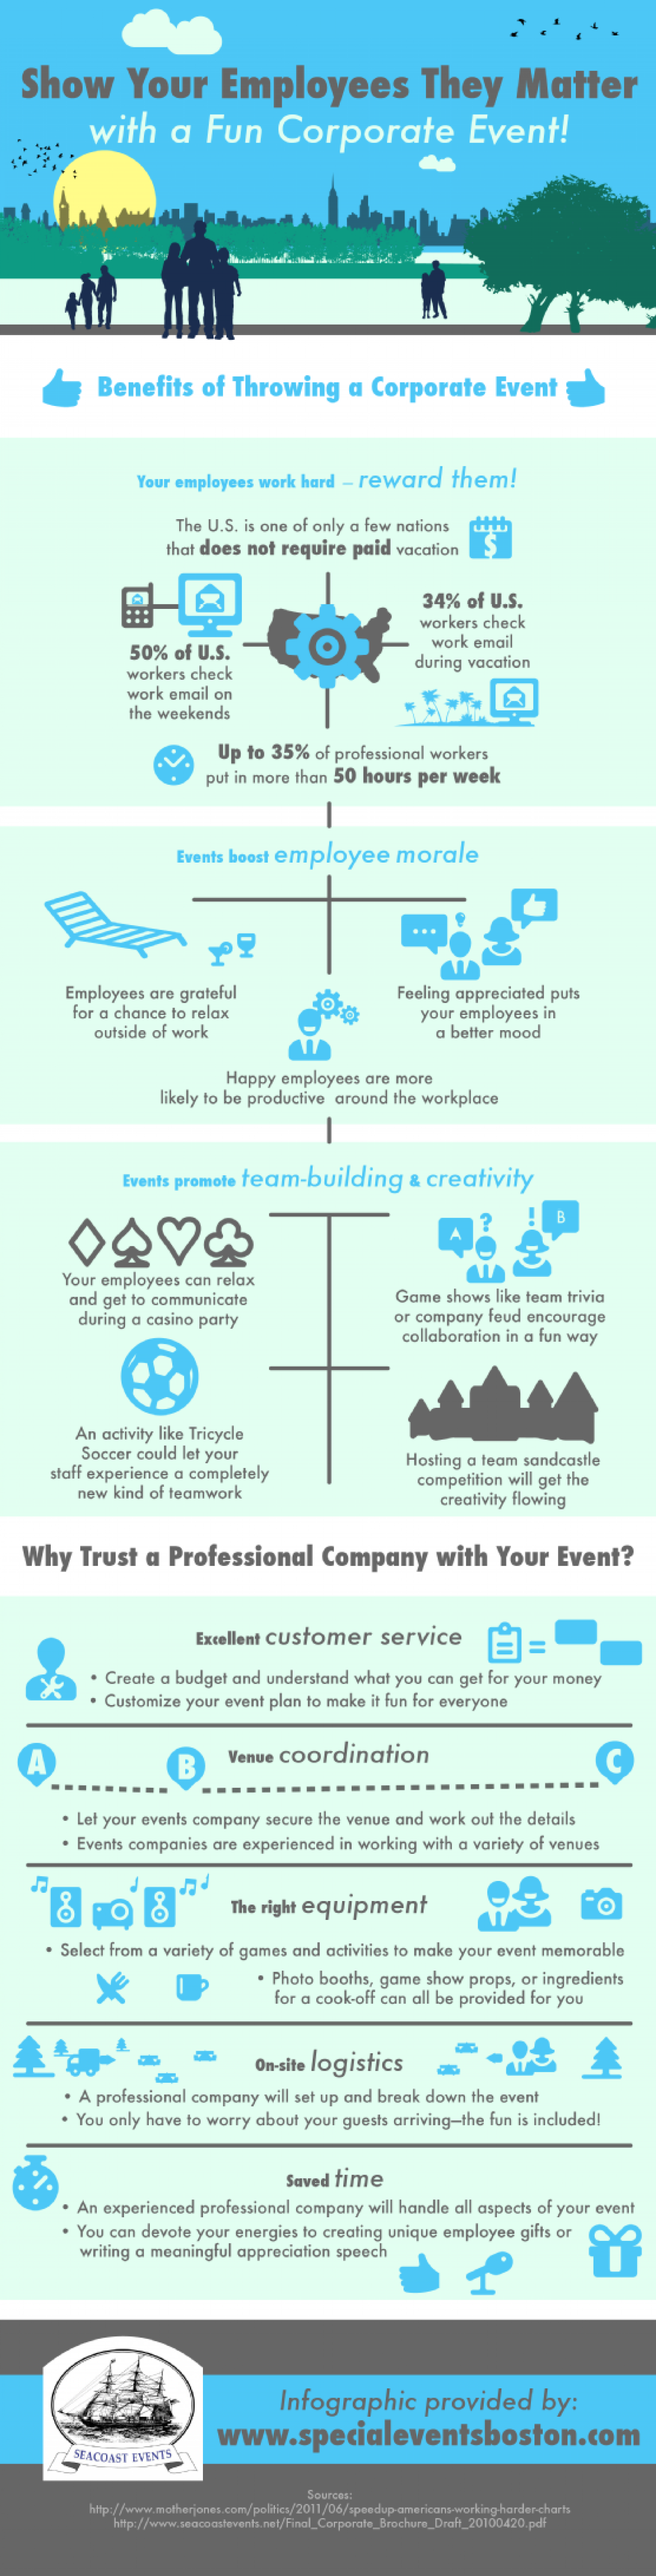 Show Your Employees They Matter with a Fun Corporate Event! Infographic